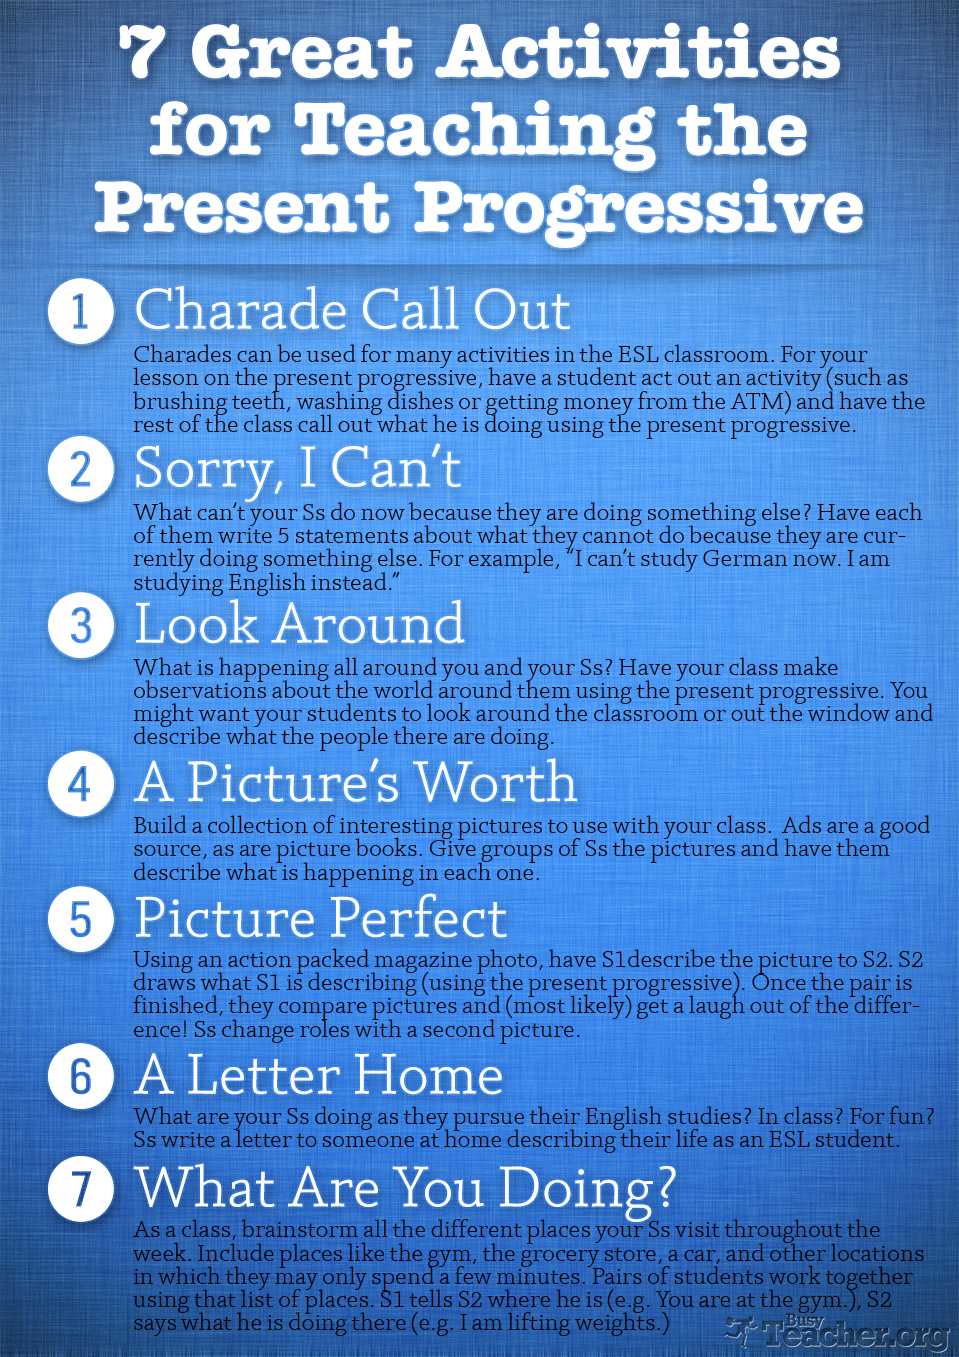 7 Great Activities to Teach the Present Progressive: Poster